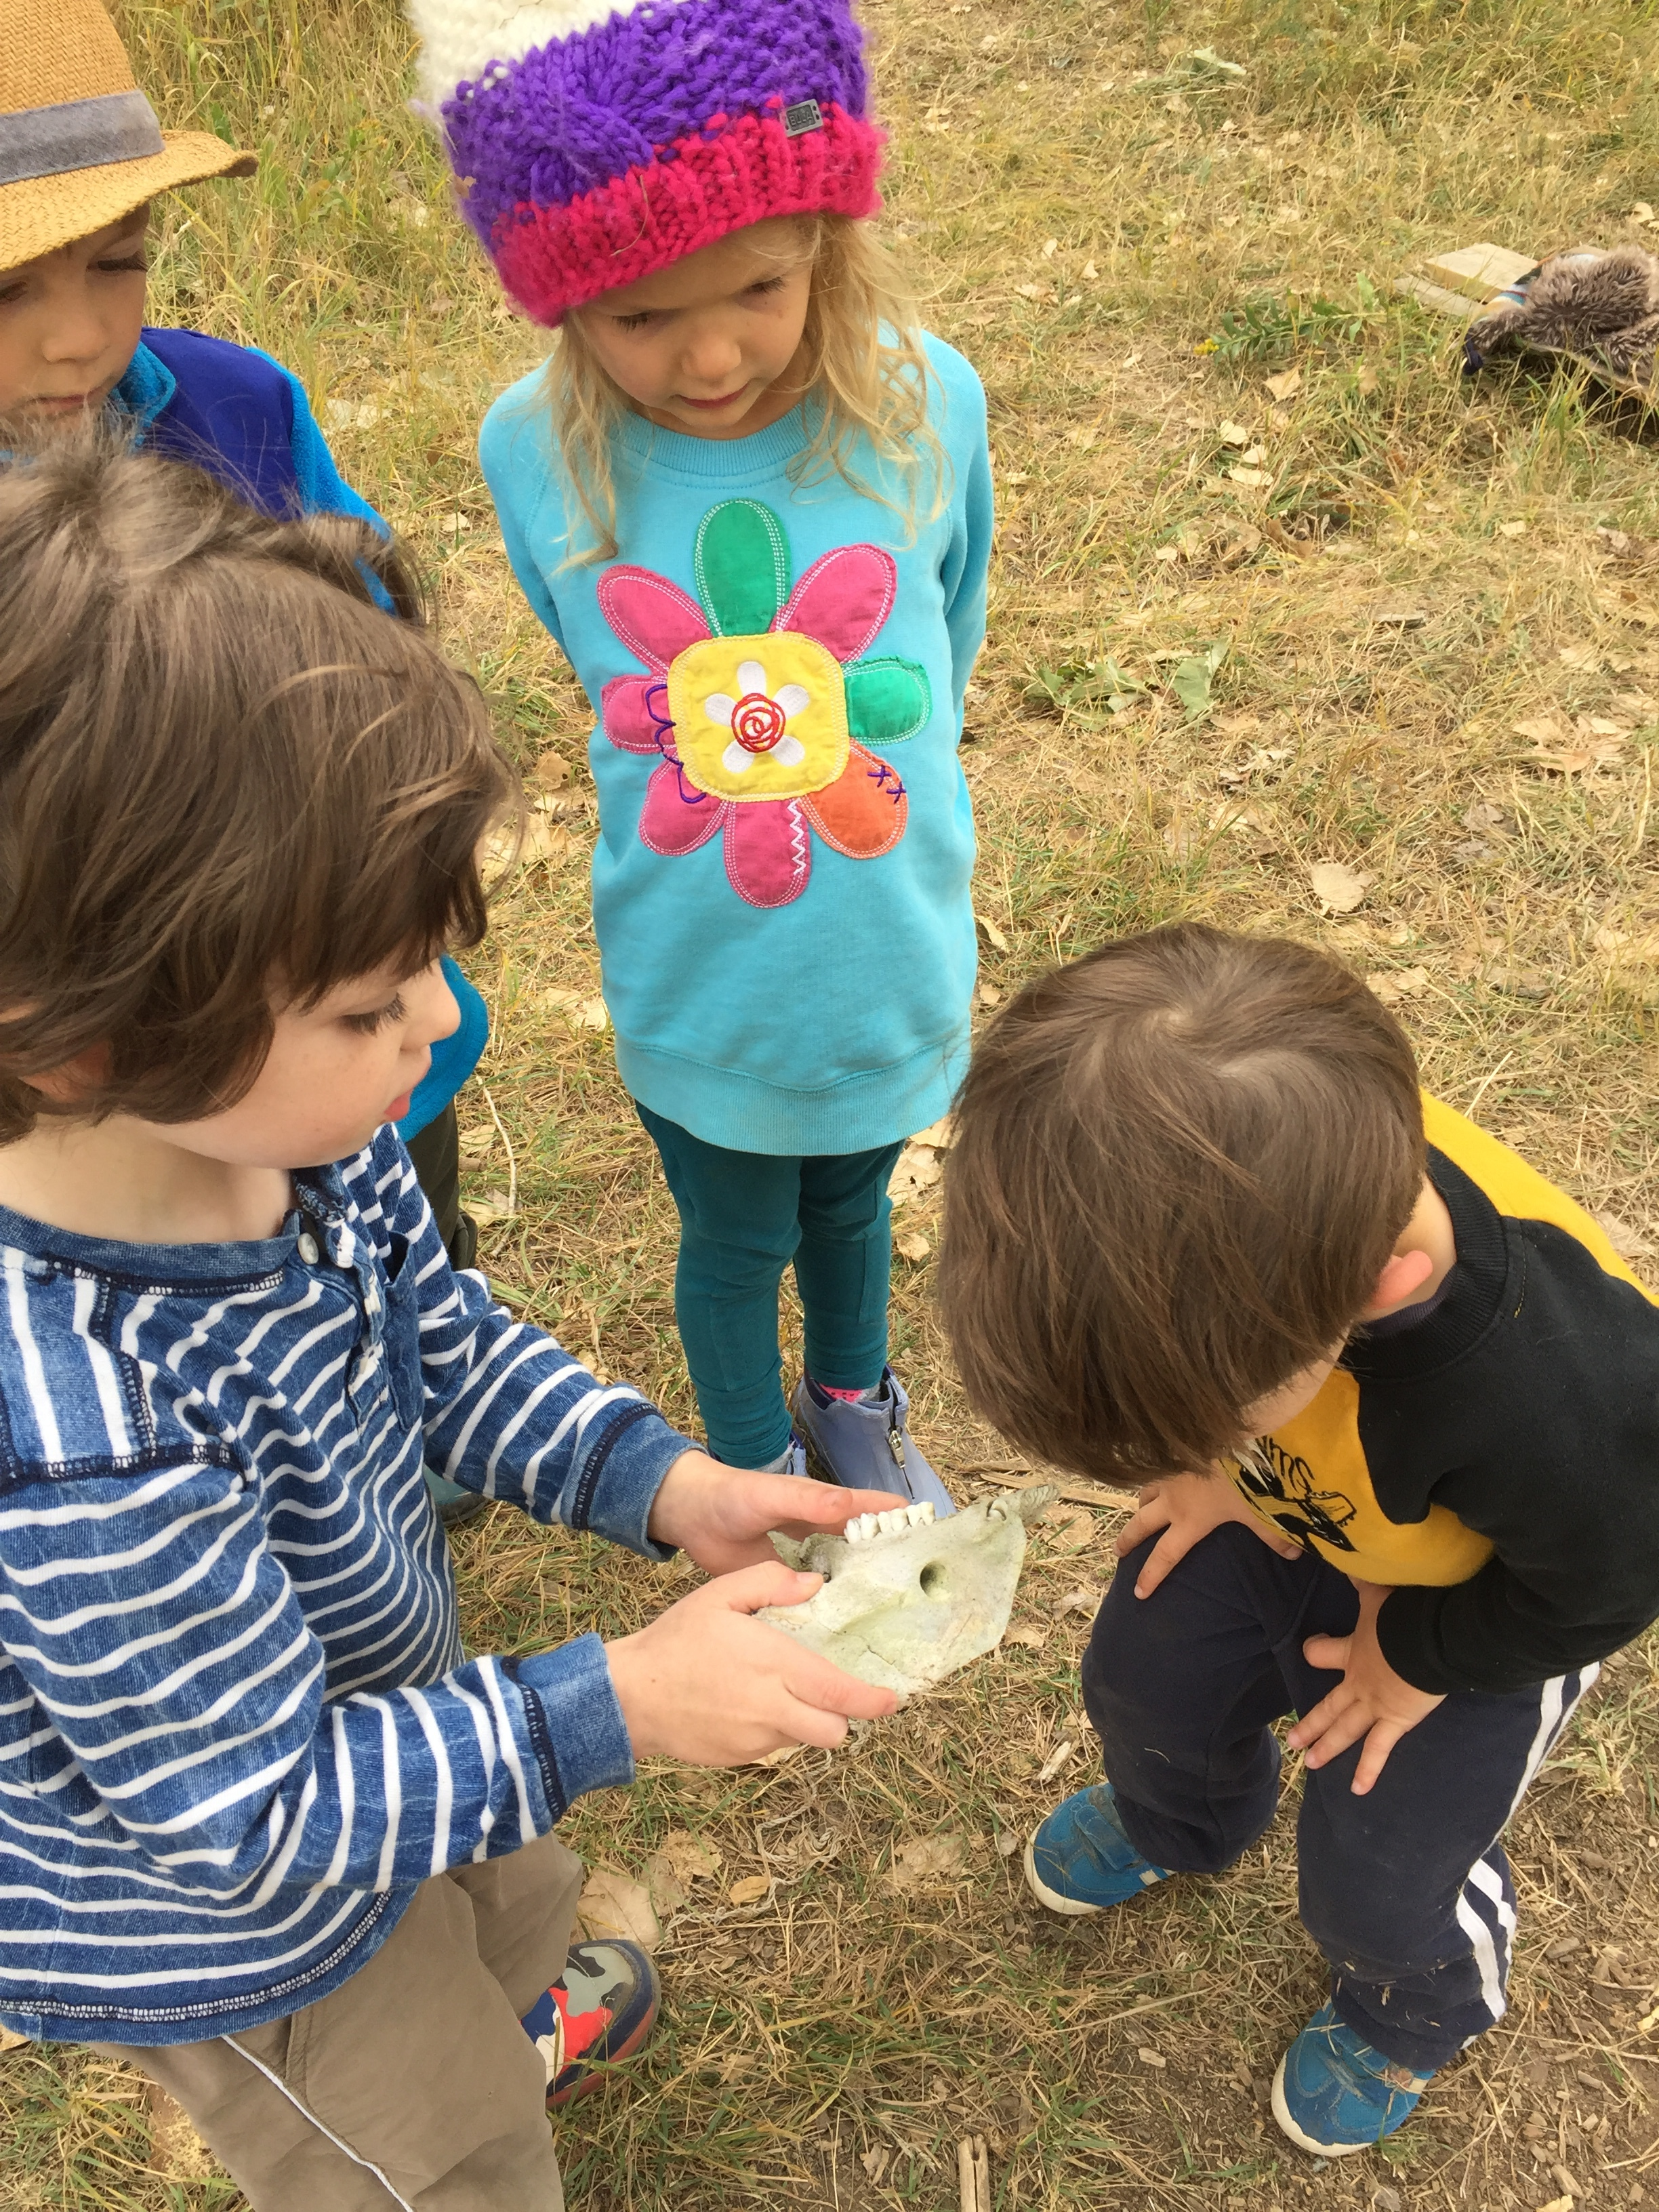 Very respectful turn-taking: examining a jaw bone we discovered. What could it be from?